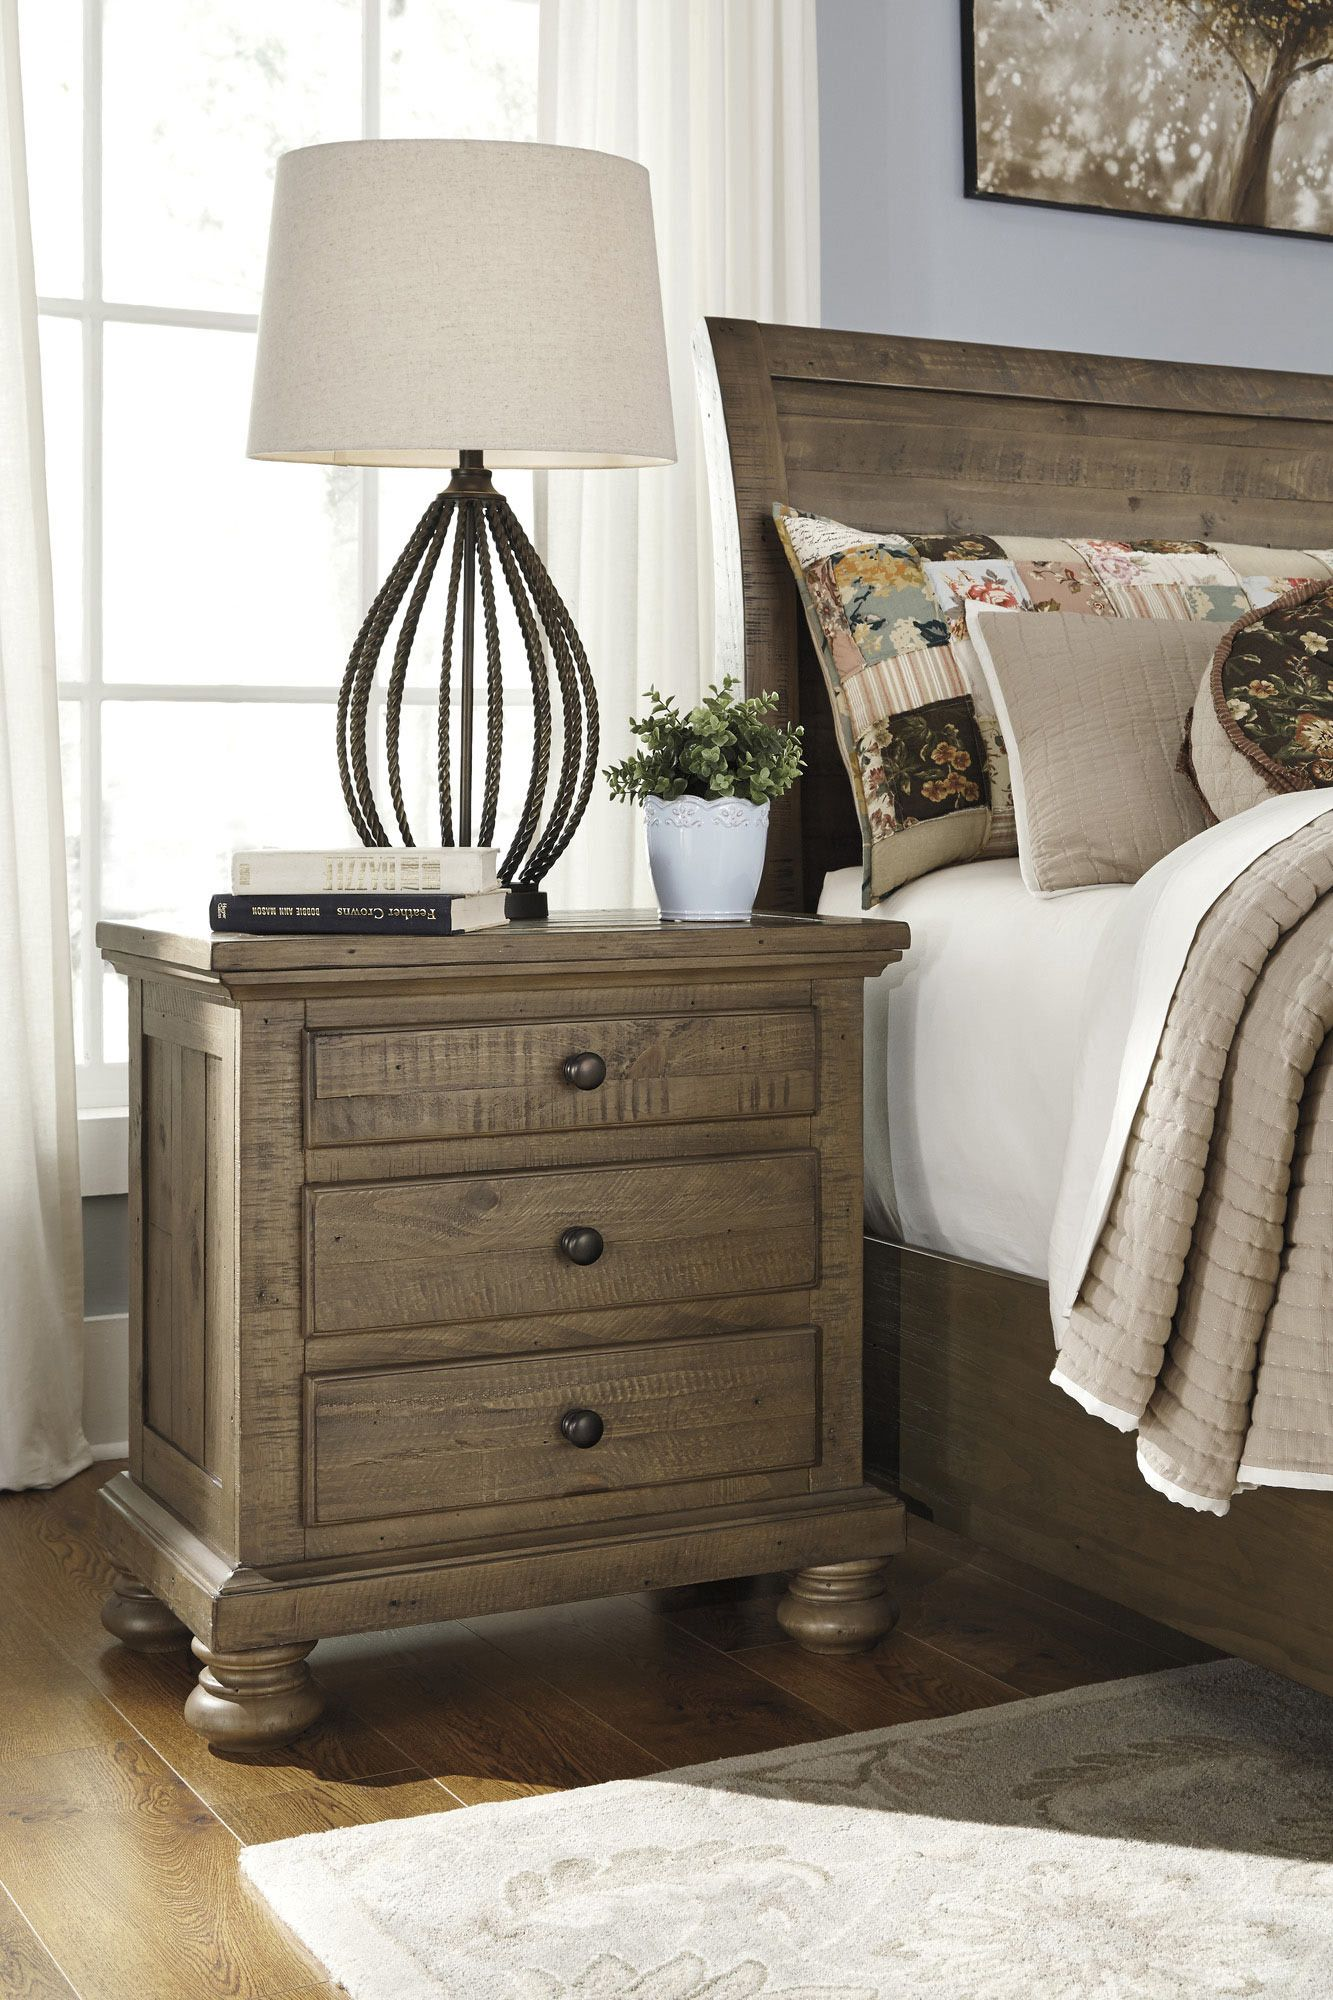 Get Your Trishley   Light Brown   Three Drawer Night Stand At Armourdale  Furniture, Kansas City KS Furniture Store.